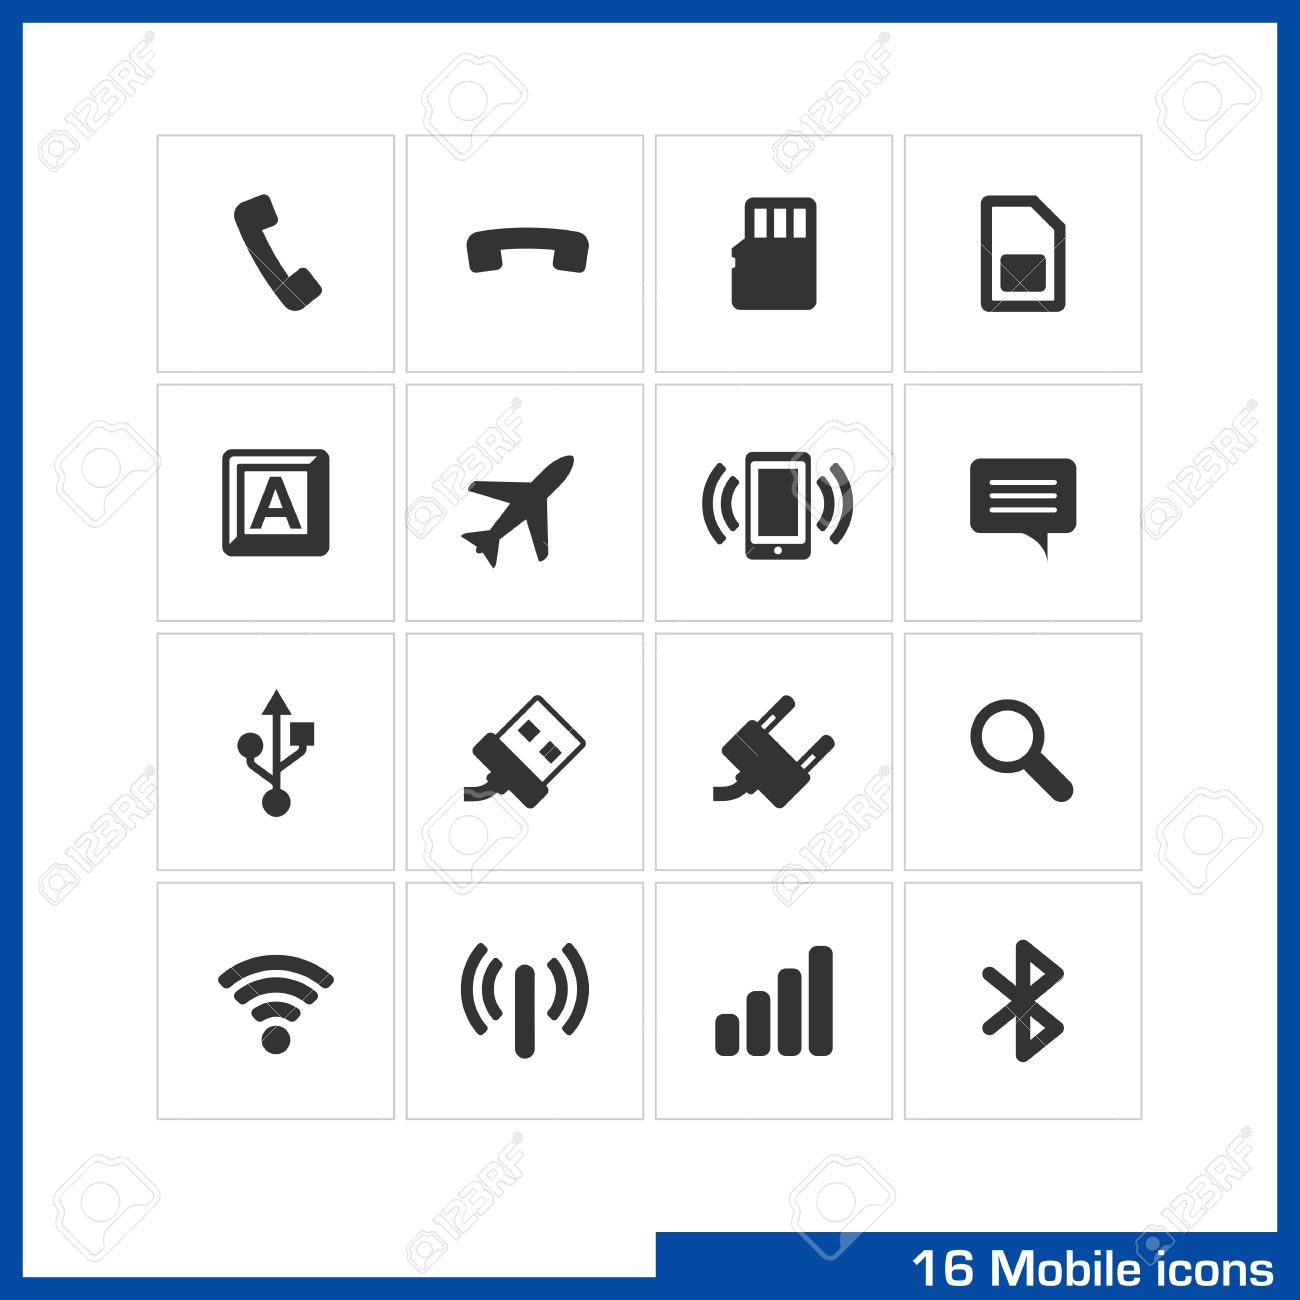 Mobile icon set  Pictograms for web, computer and mobile apps  Include pick up, flash card, sim, keyboard, plane, vibration, speech babble, USB, charge, search, wireless, router, connection symbol Stock Vector - 21730747